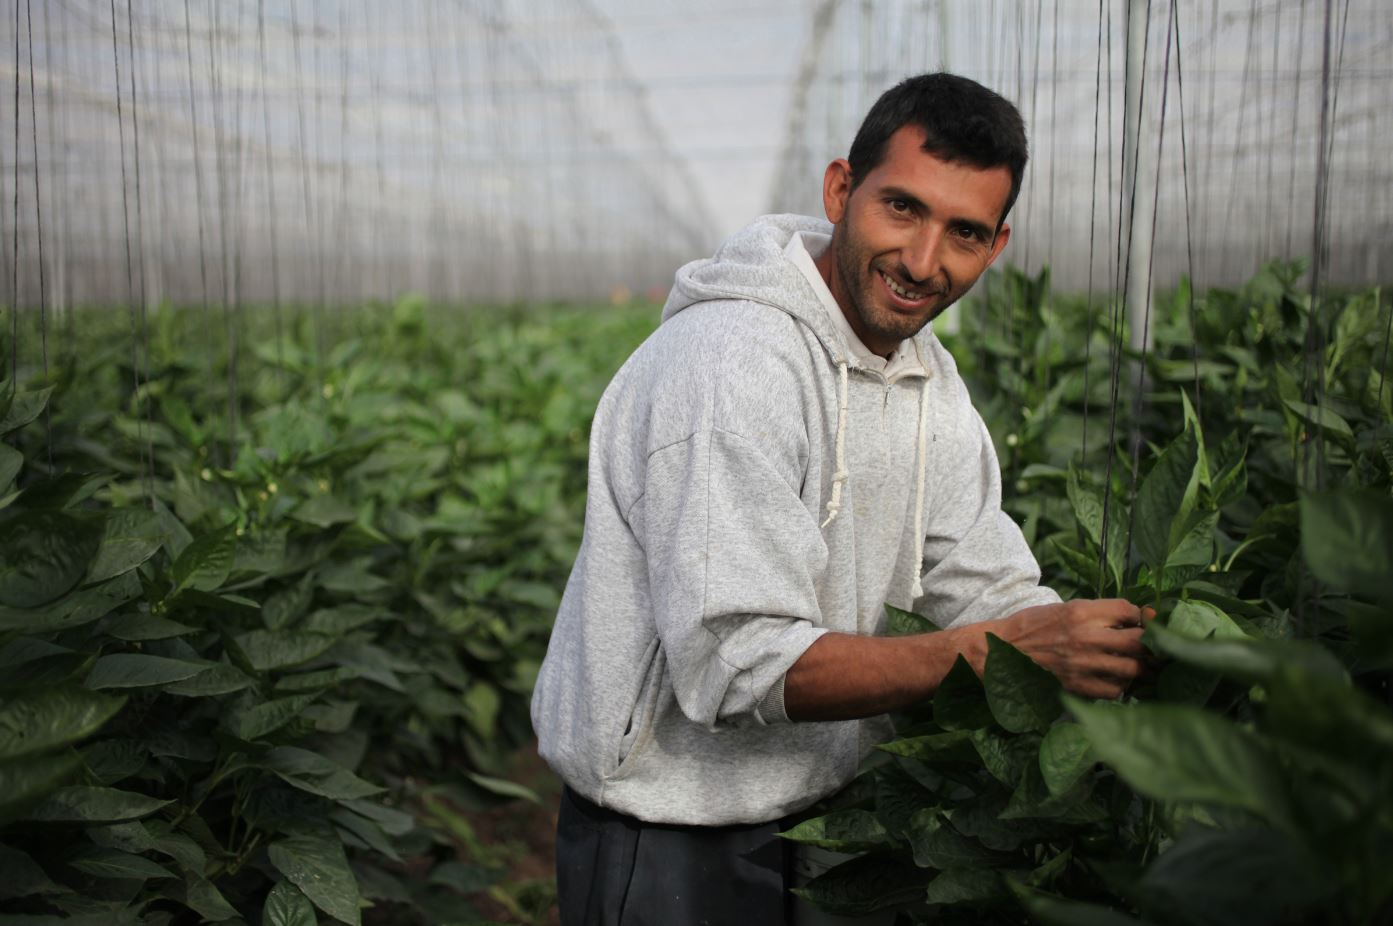 Divemex: Culiacán, Mexico | Samuel Beltran, 29, from Culiacán, nips leaves from Whole Trade organic bell pepper plants.